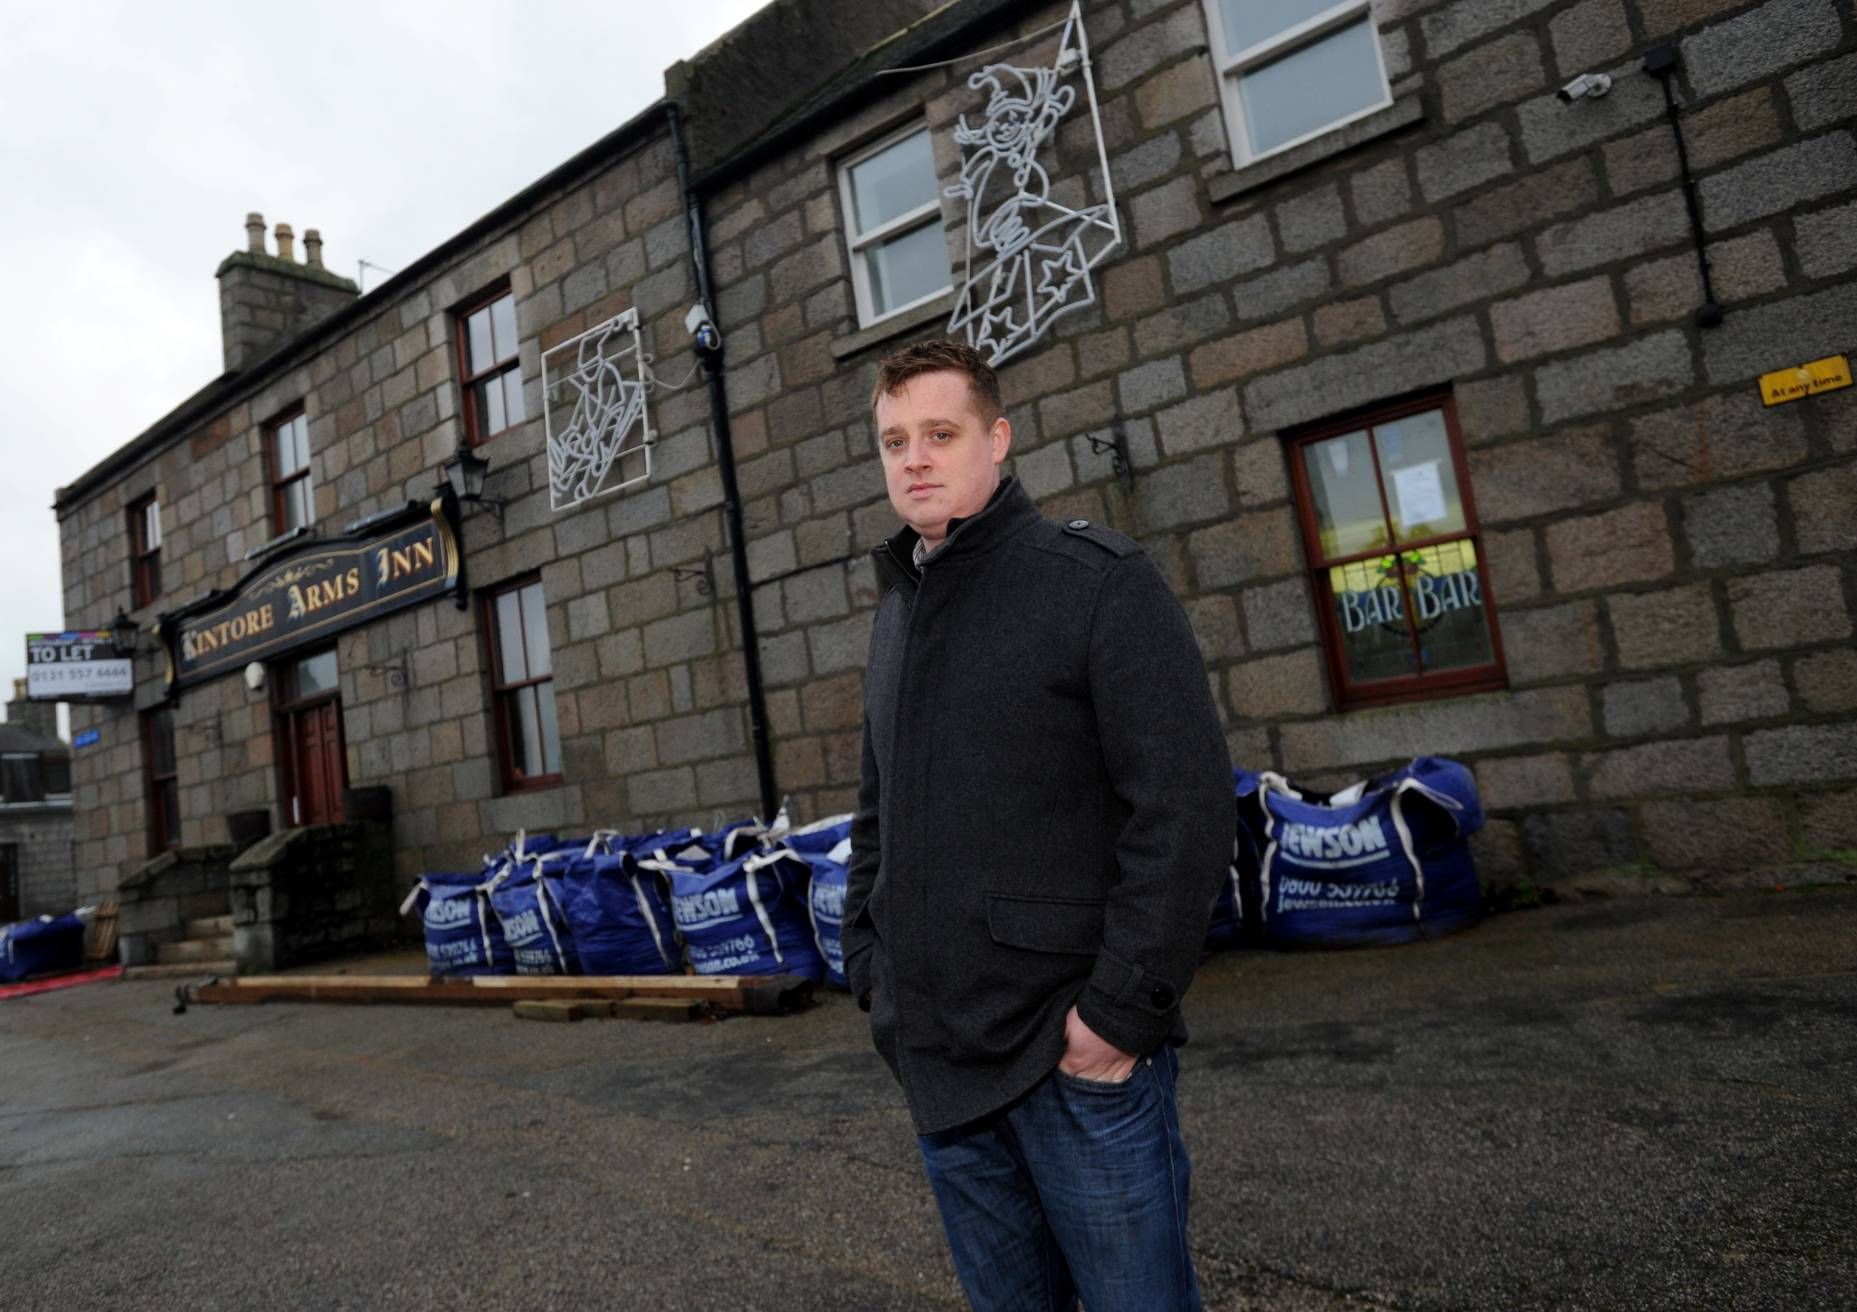 Steve MacDonald is to reopen the Kintore Bar, calling it the Square Bar and Lounge.